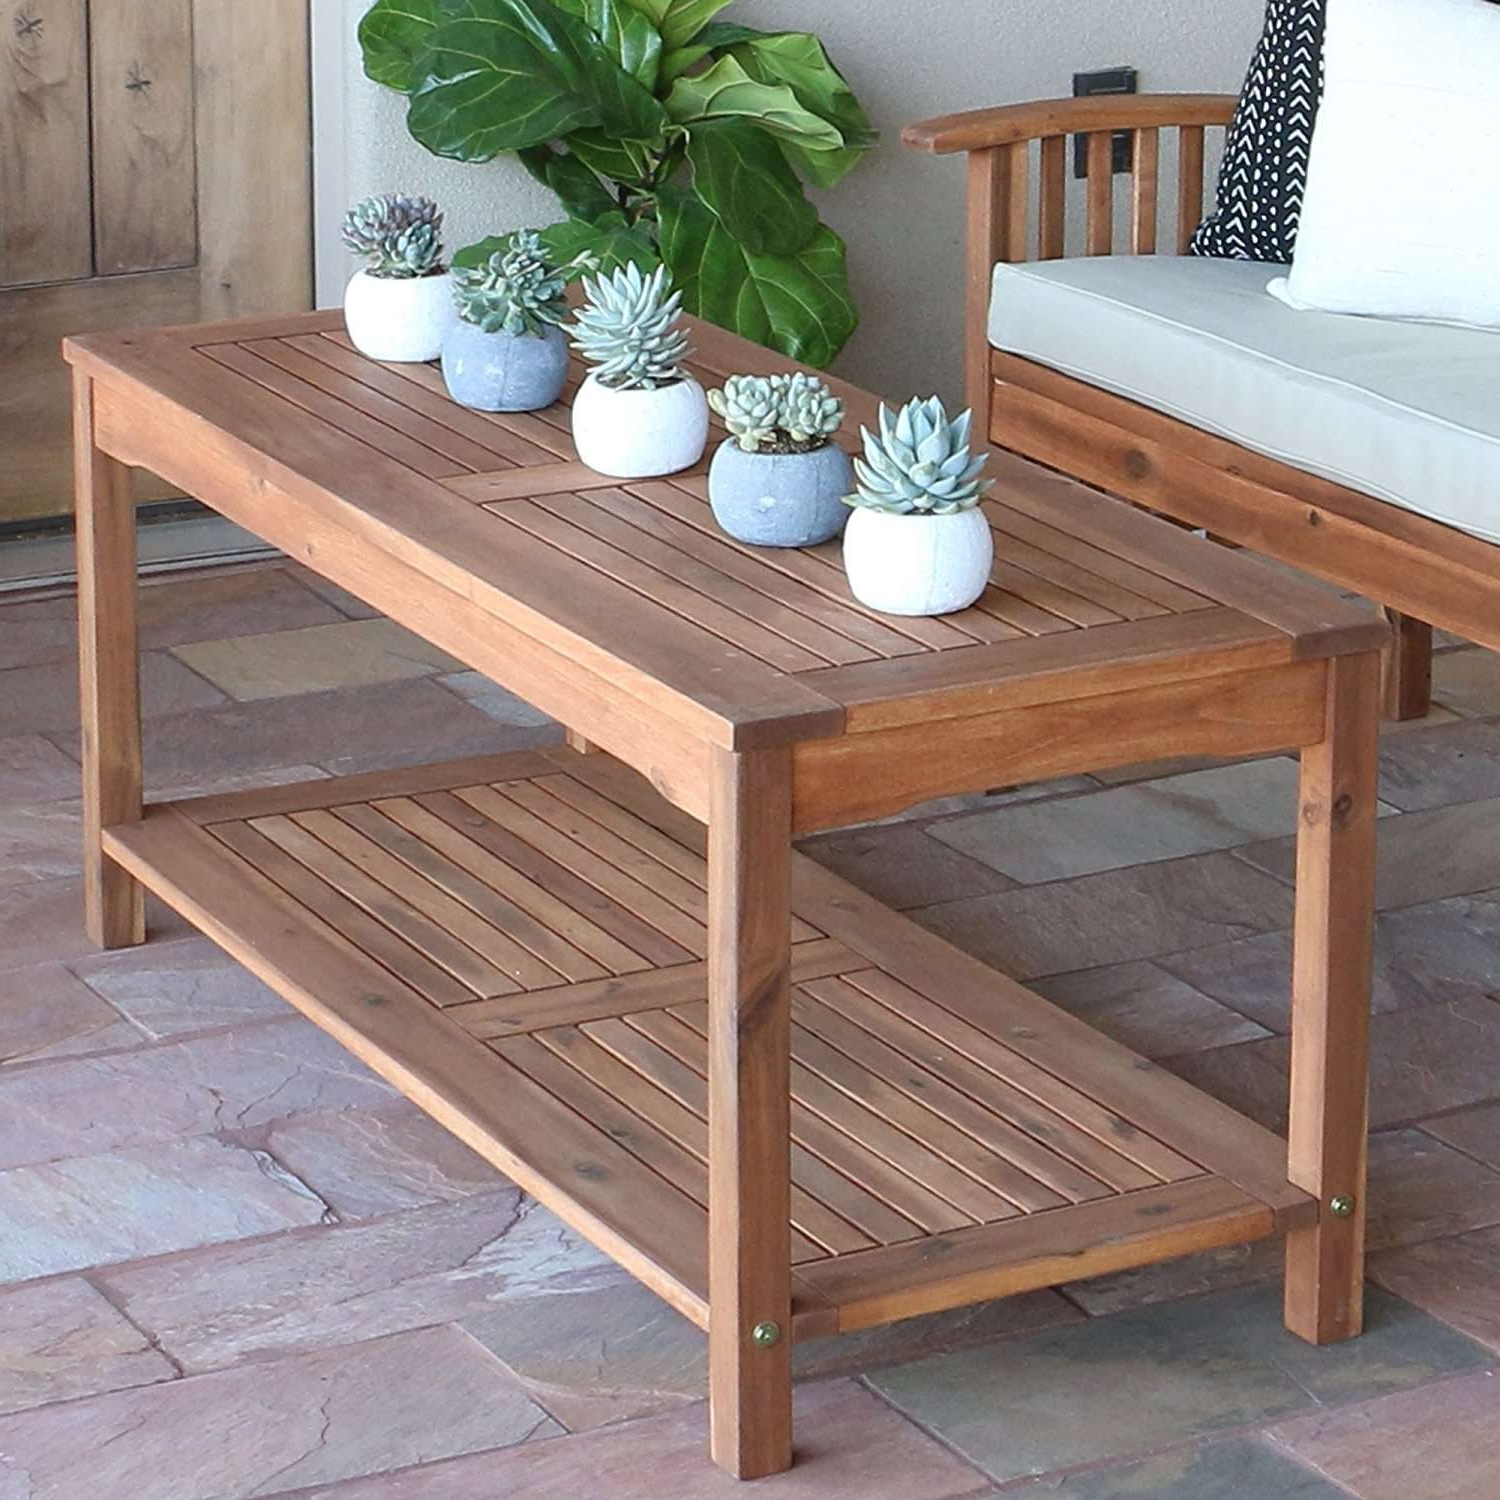 9 Crate And Barrel Concrete Coffee Table Gallery (View 19 of 20)